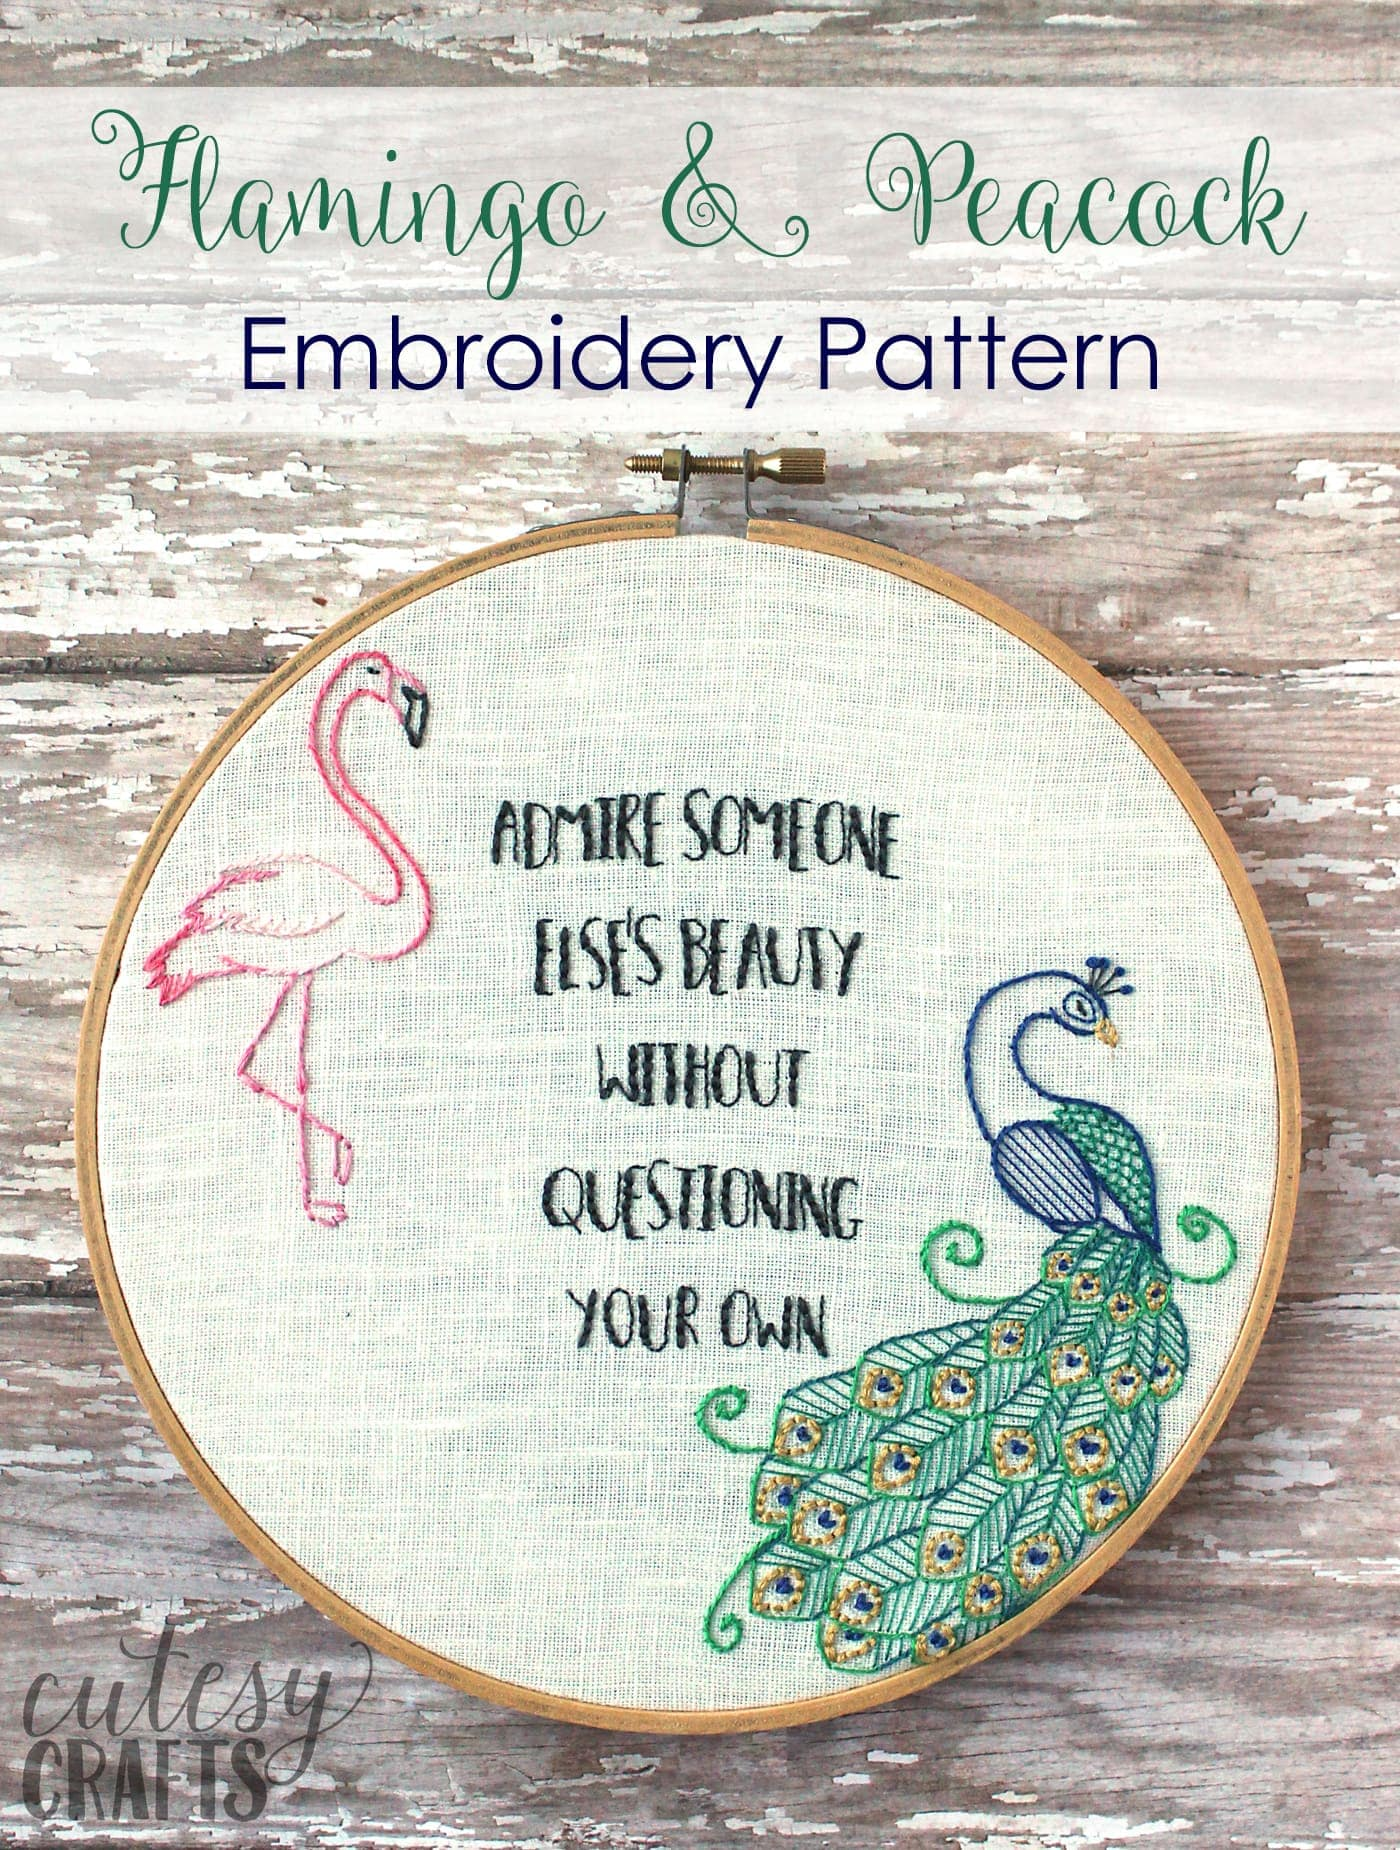 "Flamingo and Peacock Free Embroidery Pattern - Quote embroidery ""Admire Someone else's beauty without questioning your own"" #embroiderypattern #freeembroiderypattern #flamingo #peacock #embroiderypatternquote"